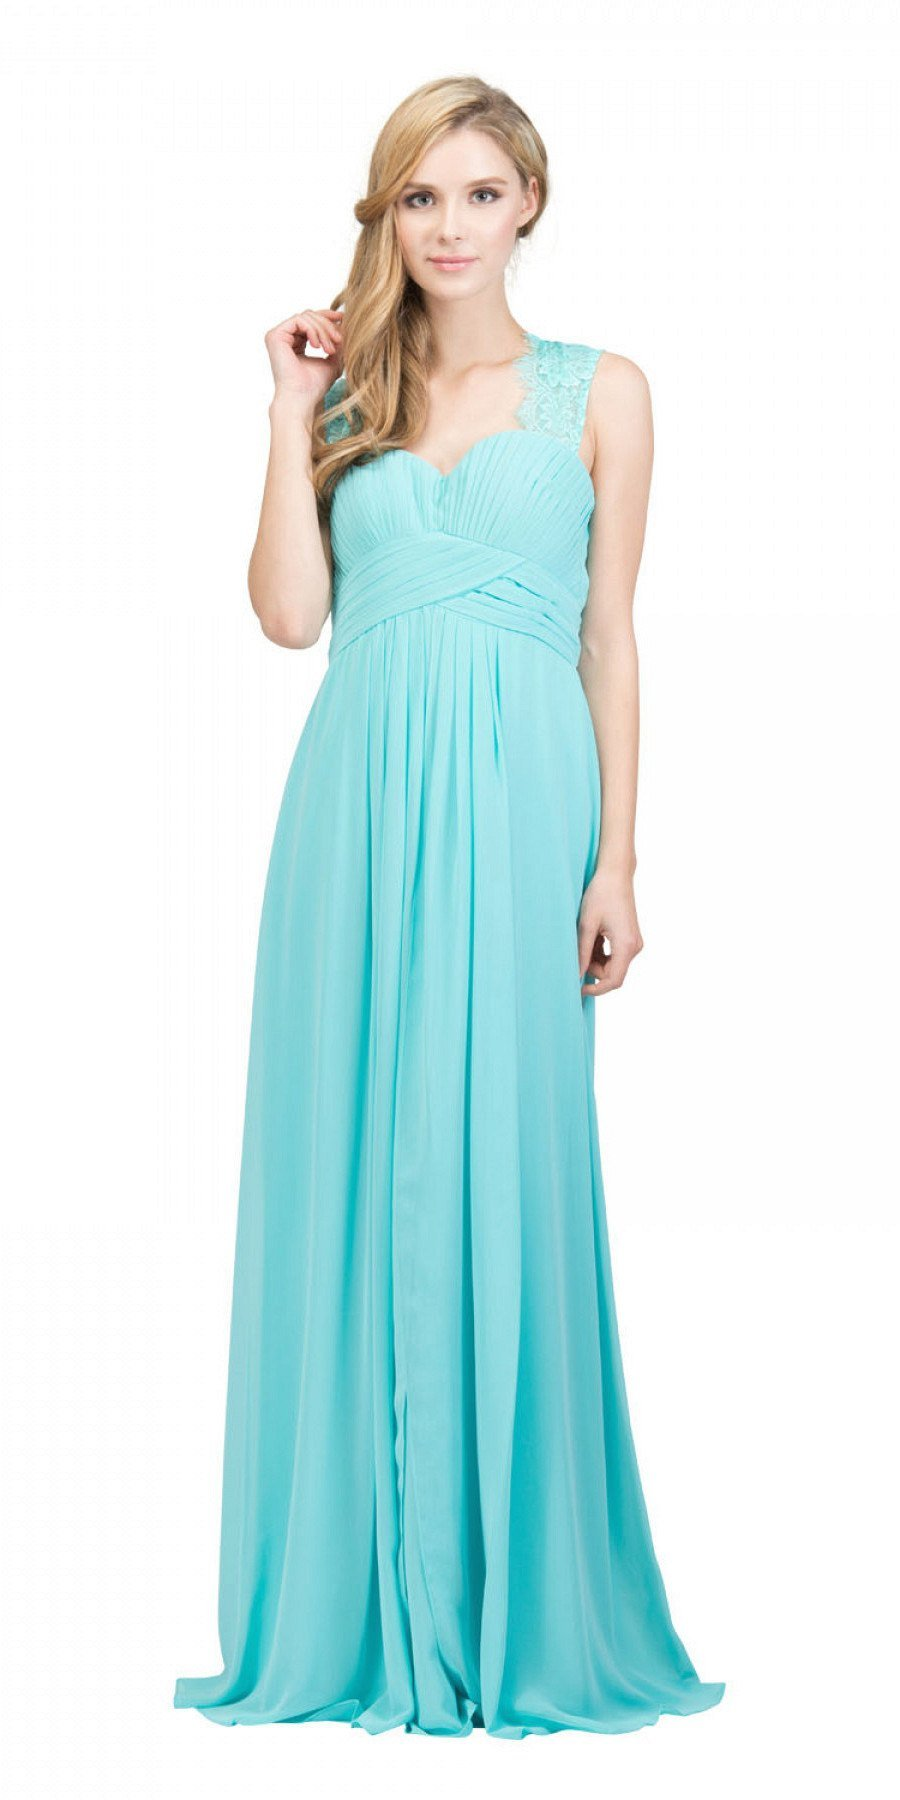 73cd0ac860f17 Starbox USA Tiffany Blue Long Bridesmaids Dress Cut Out Back Empire Waist.  Tap to expand